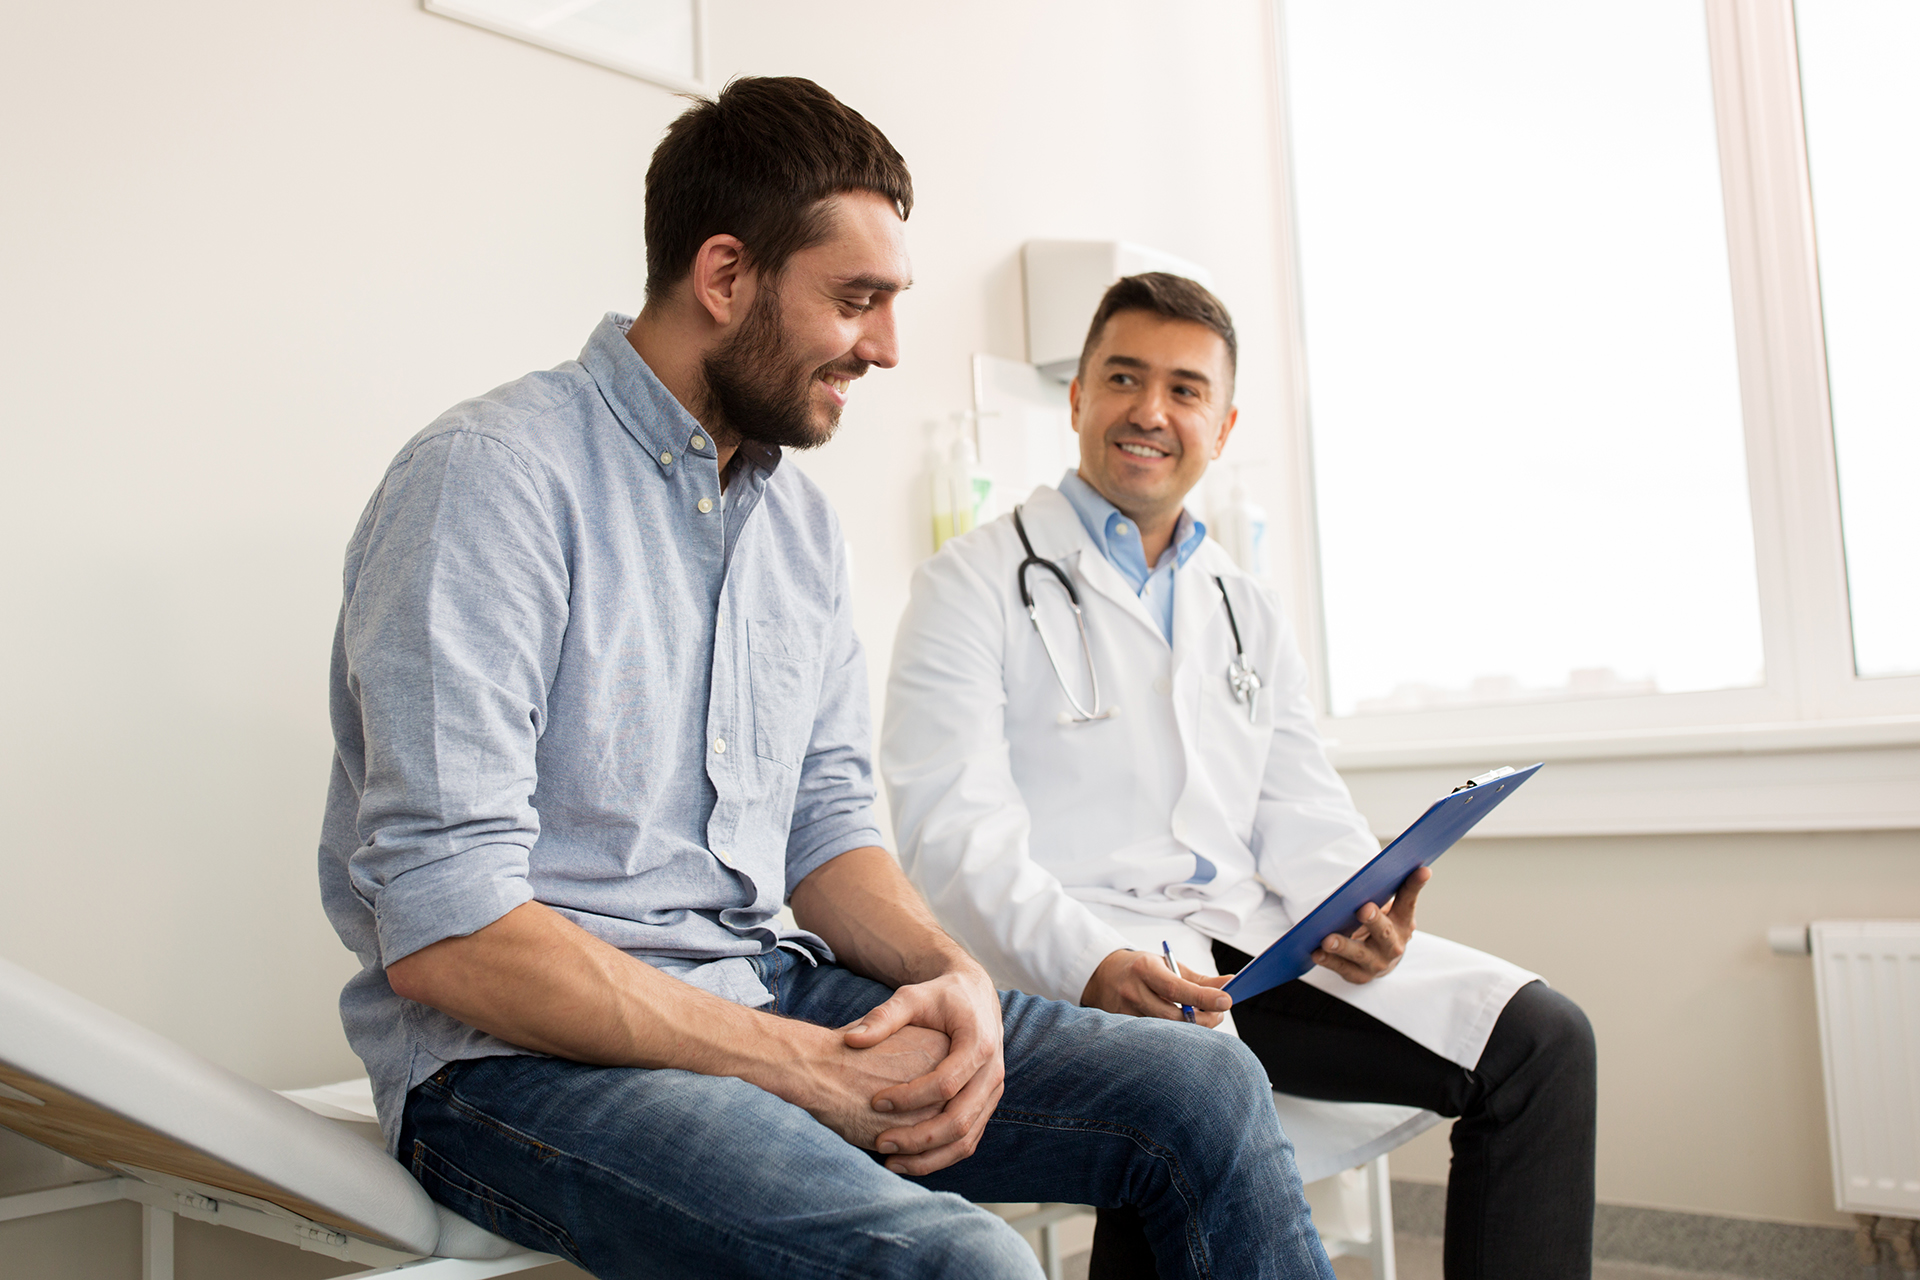 Doctor sitting with patient showing them something in a folder